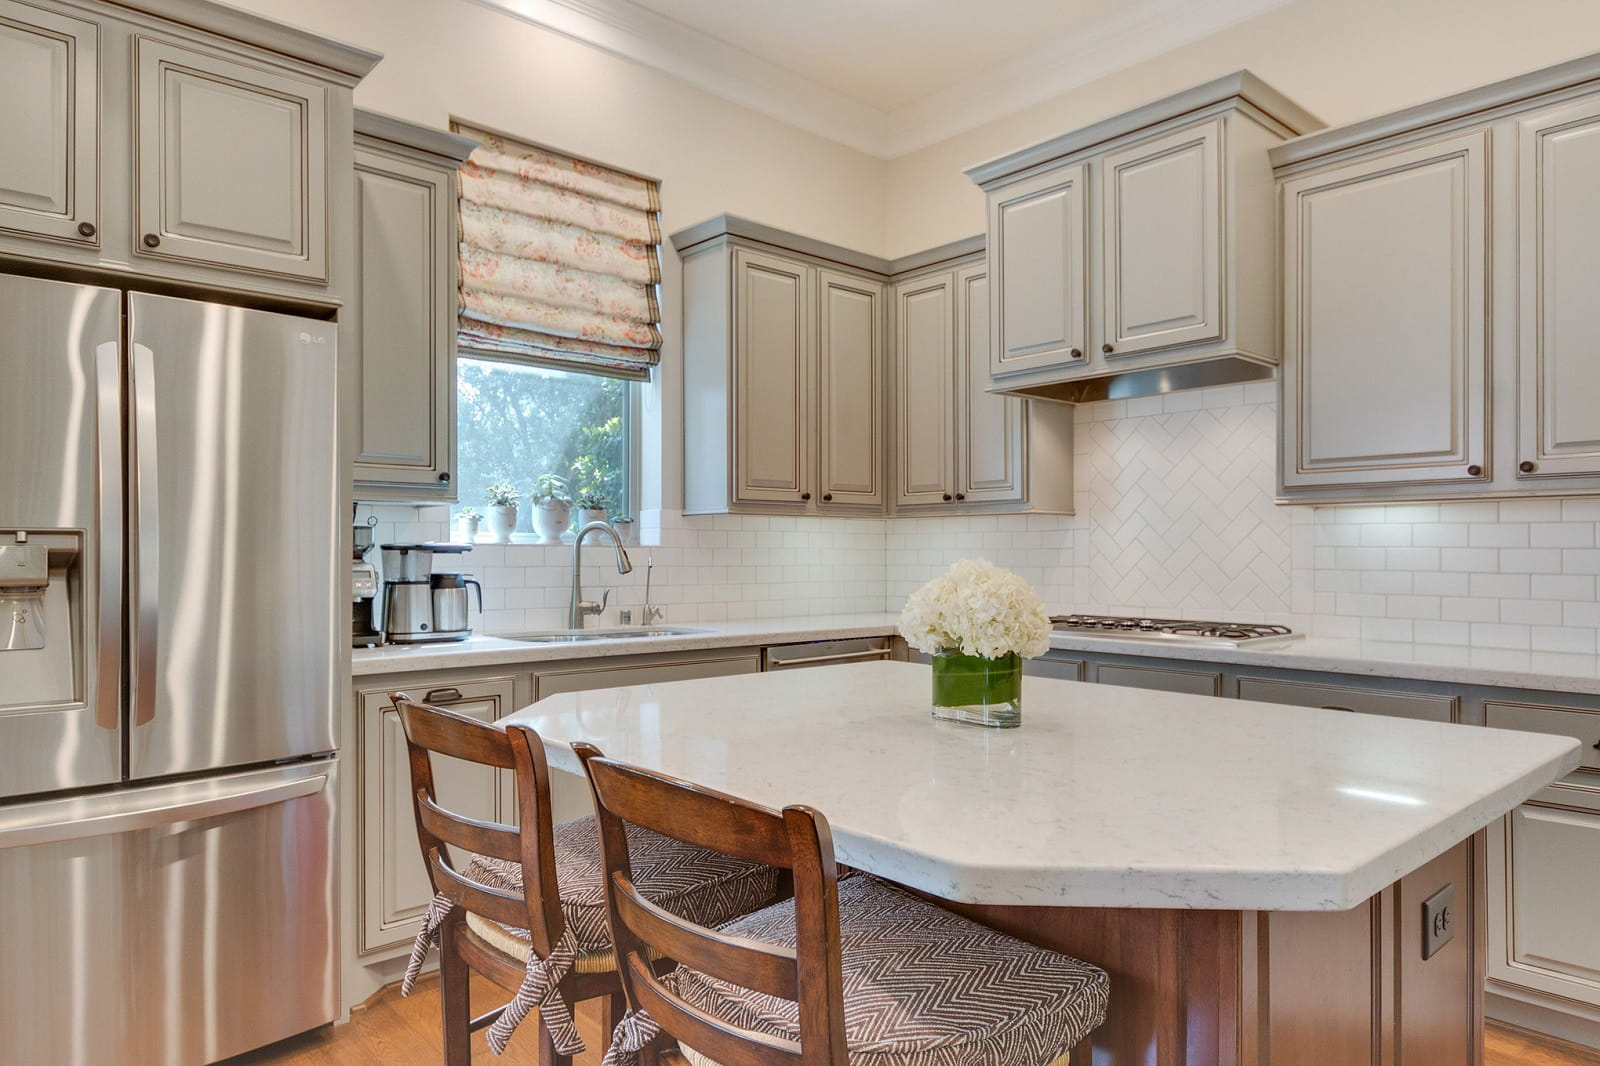 Real Estate Photographers in Sugar Land - TX - Kitchen View